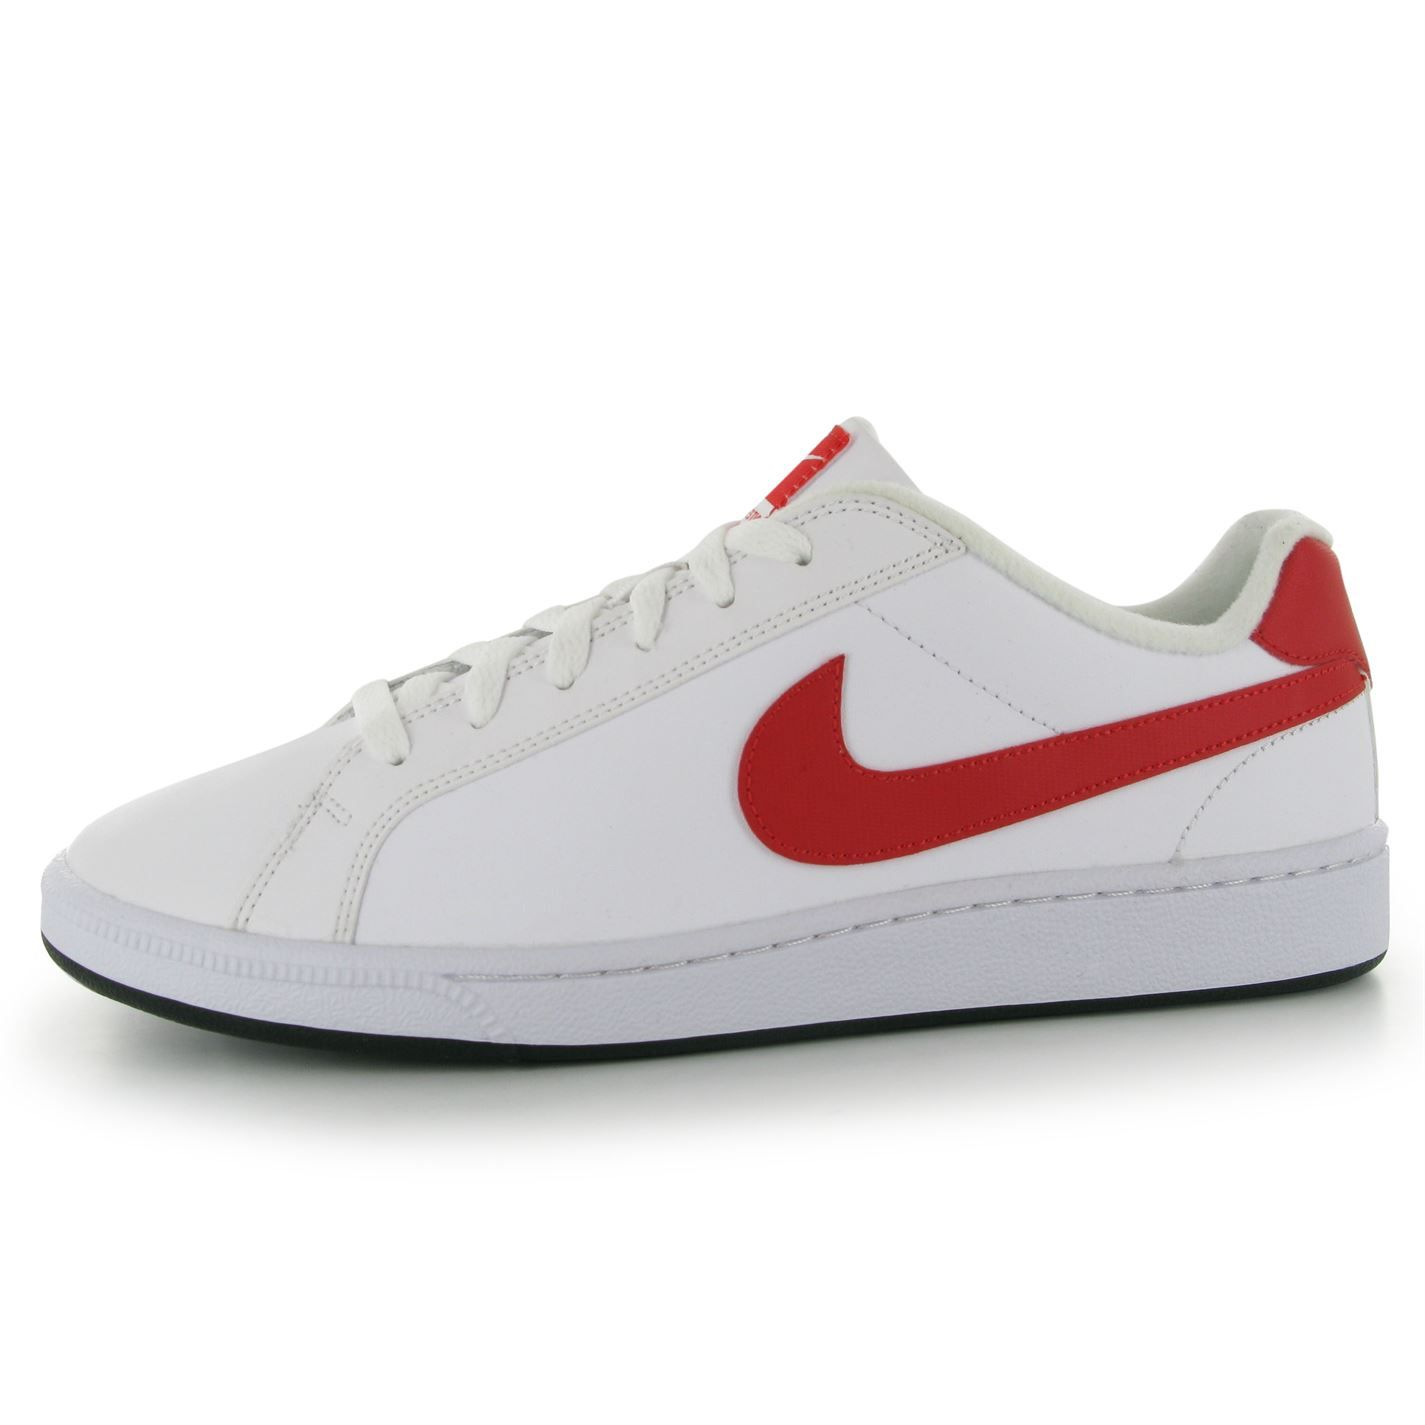 Nike | Nike Court Majestic Homme Tennis | Homme Tennis